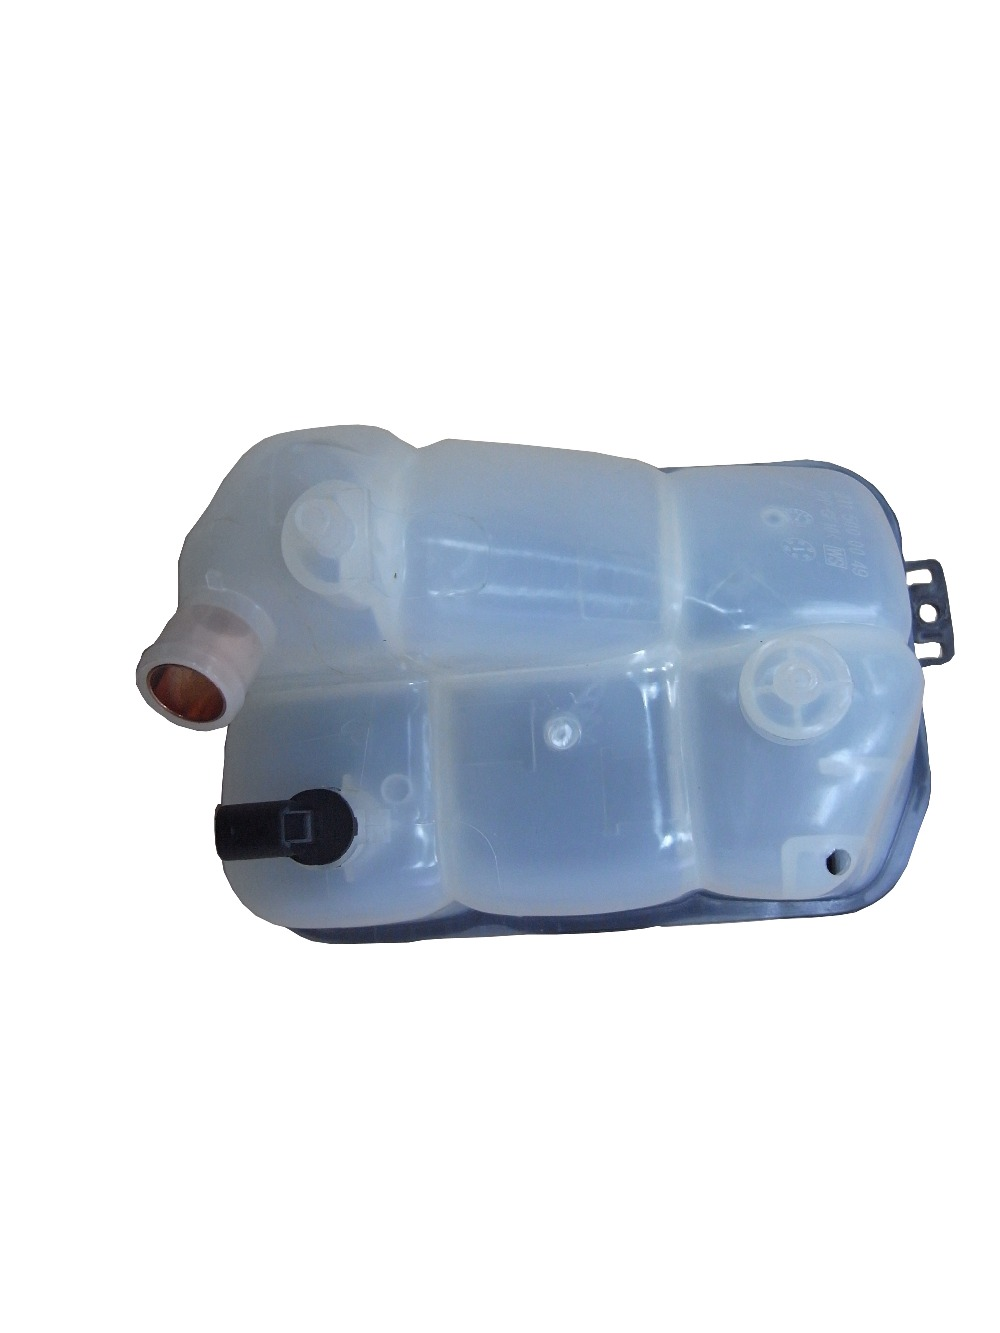 2115000049 car radiator expansion tank for Benz coolant overflow ...